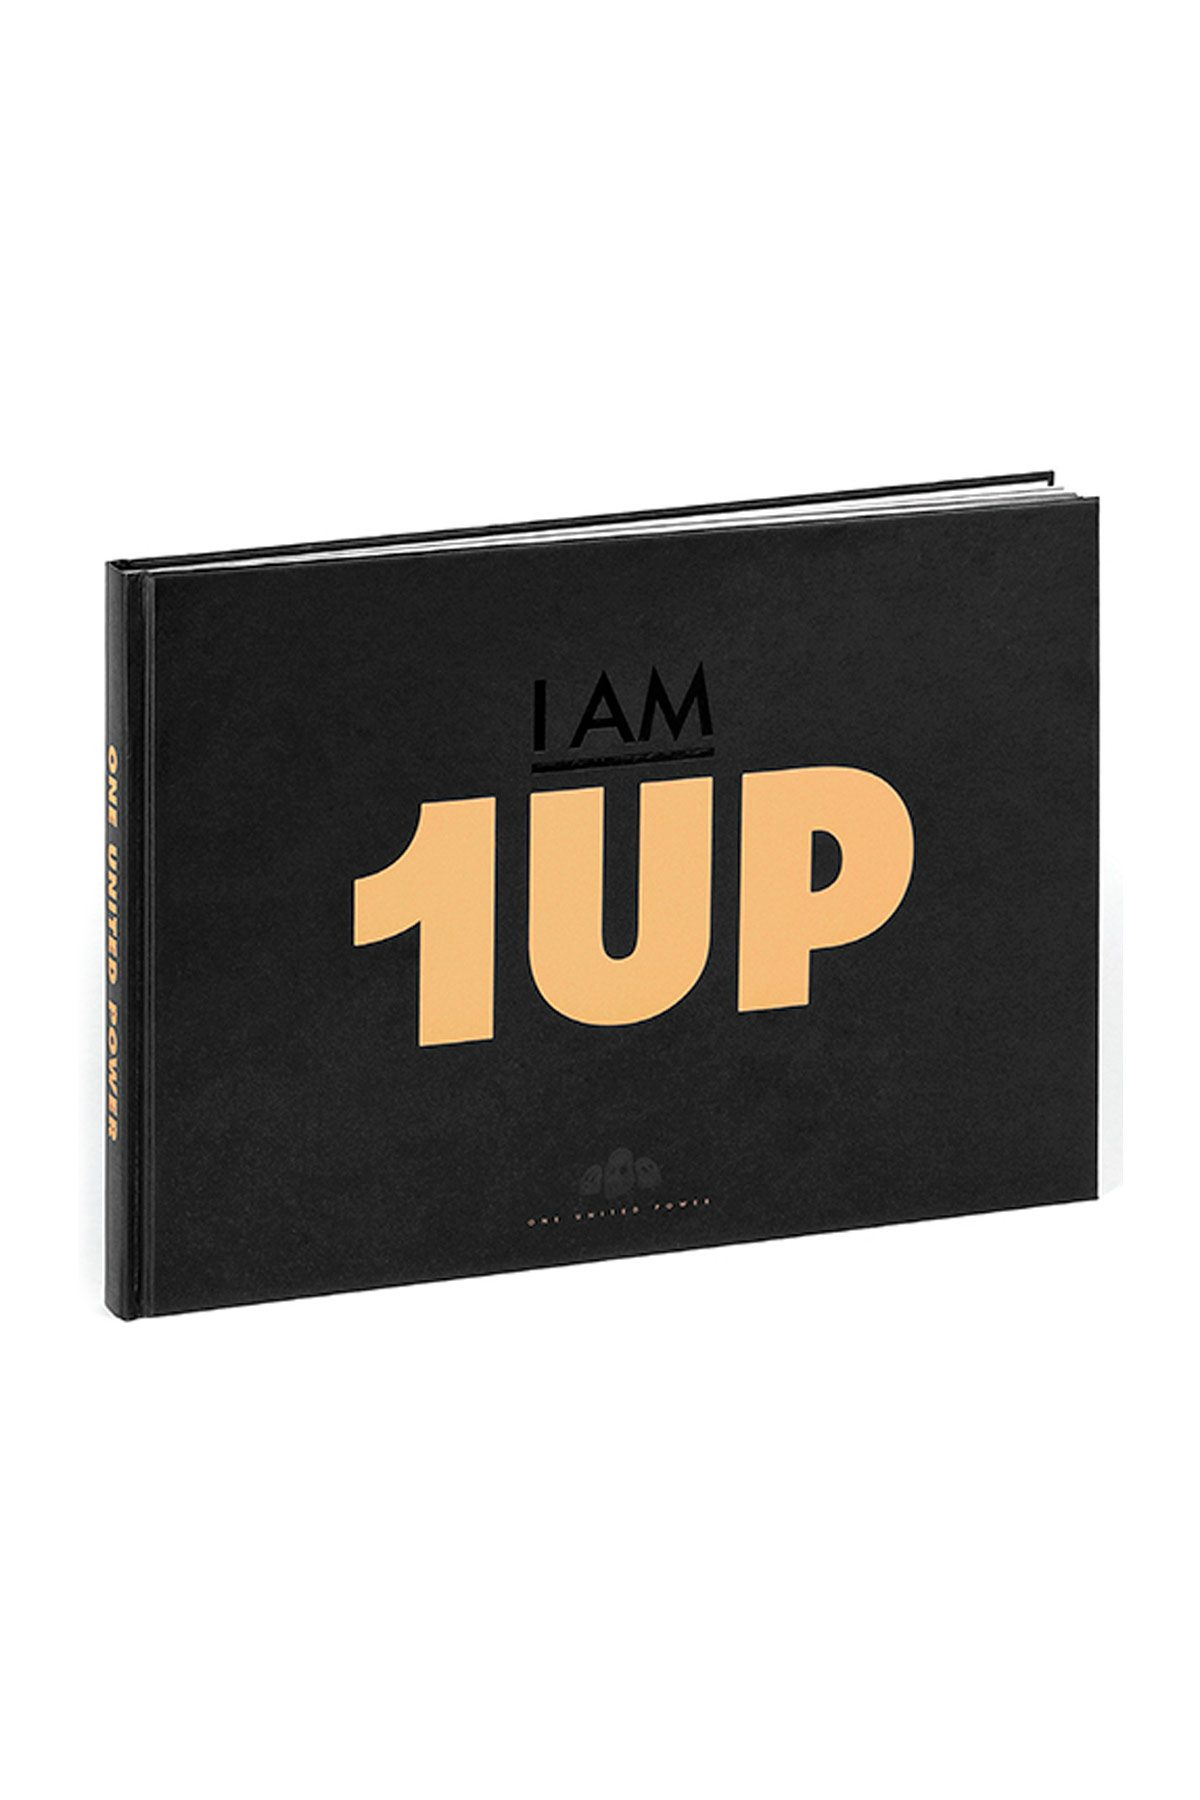 I AM 1UP - One United Power